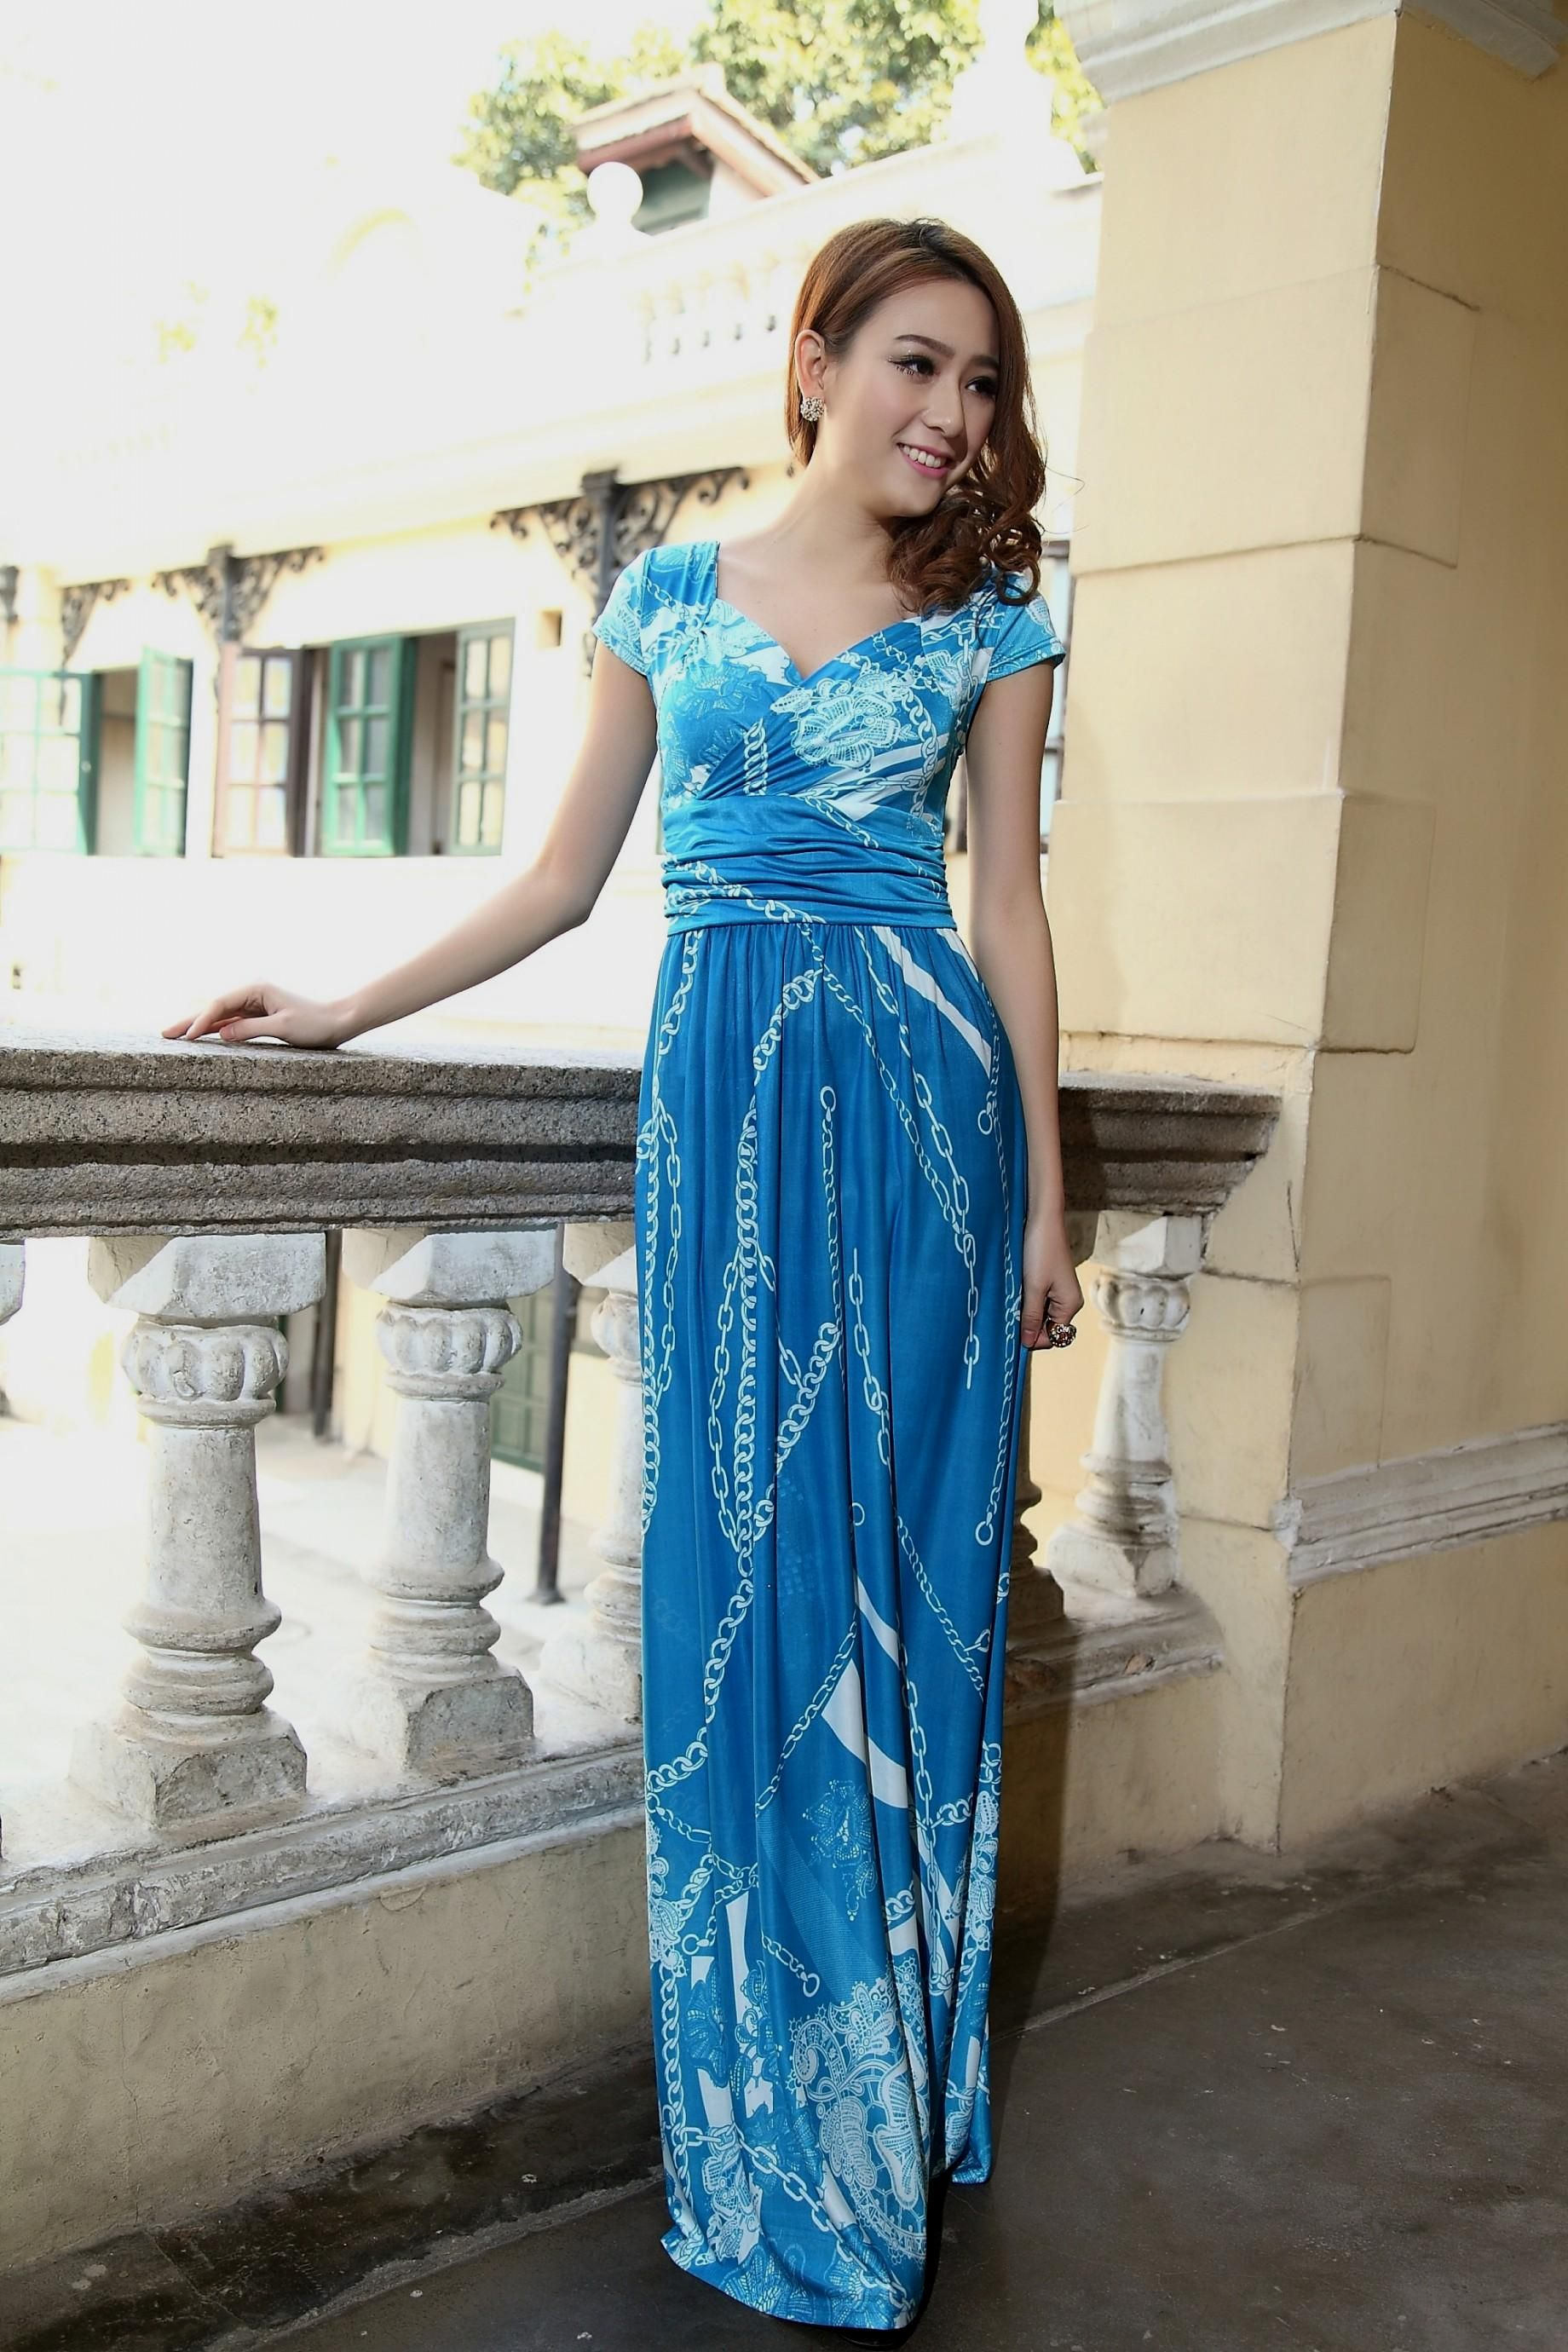 Blue Summer As Plus Size Maternity Dresses For Baby Shower,